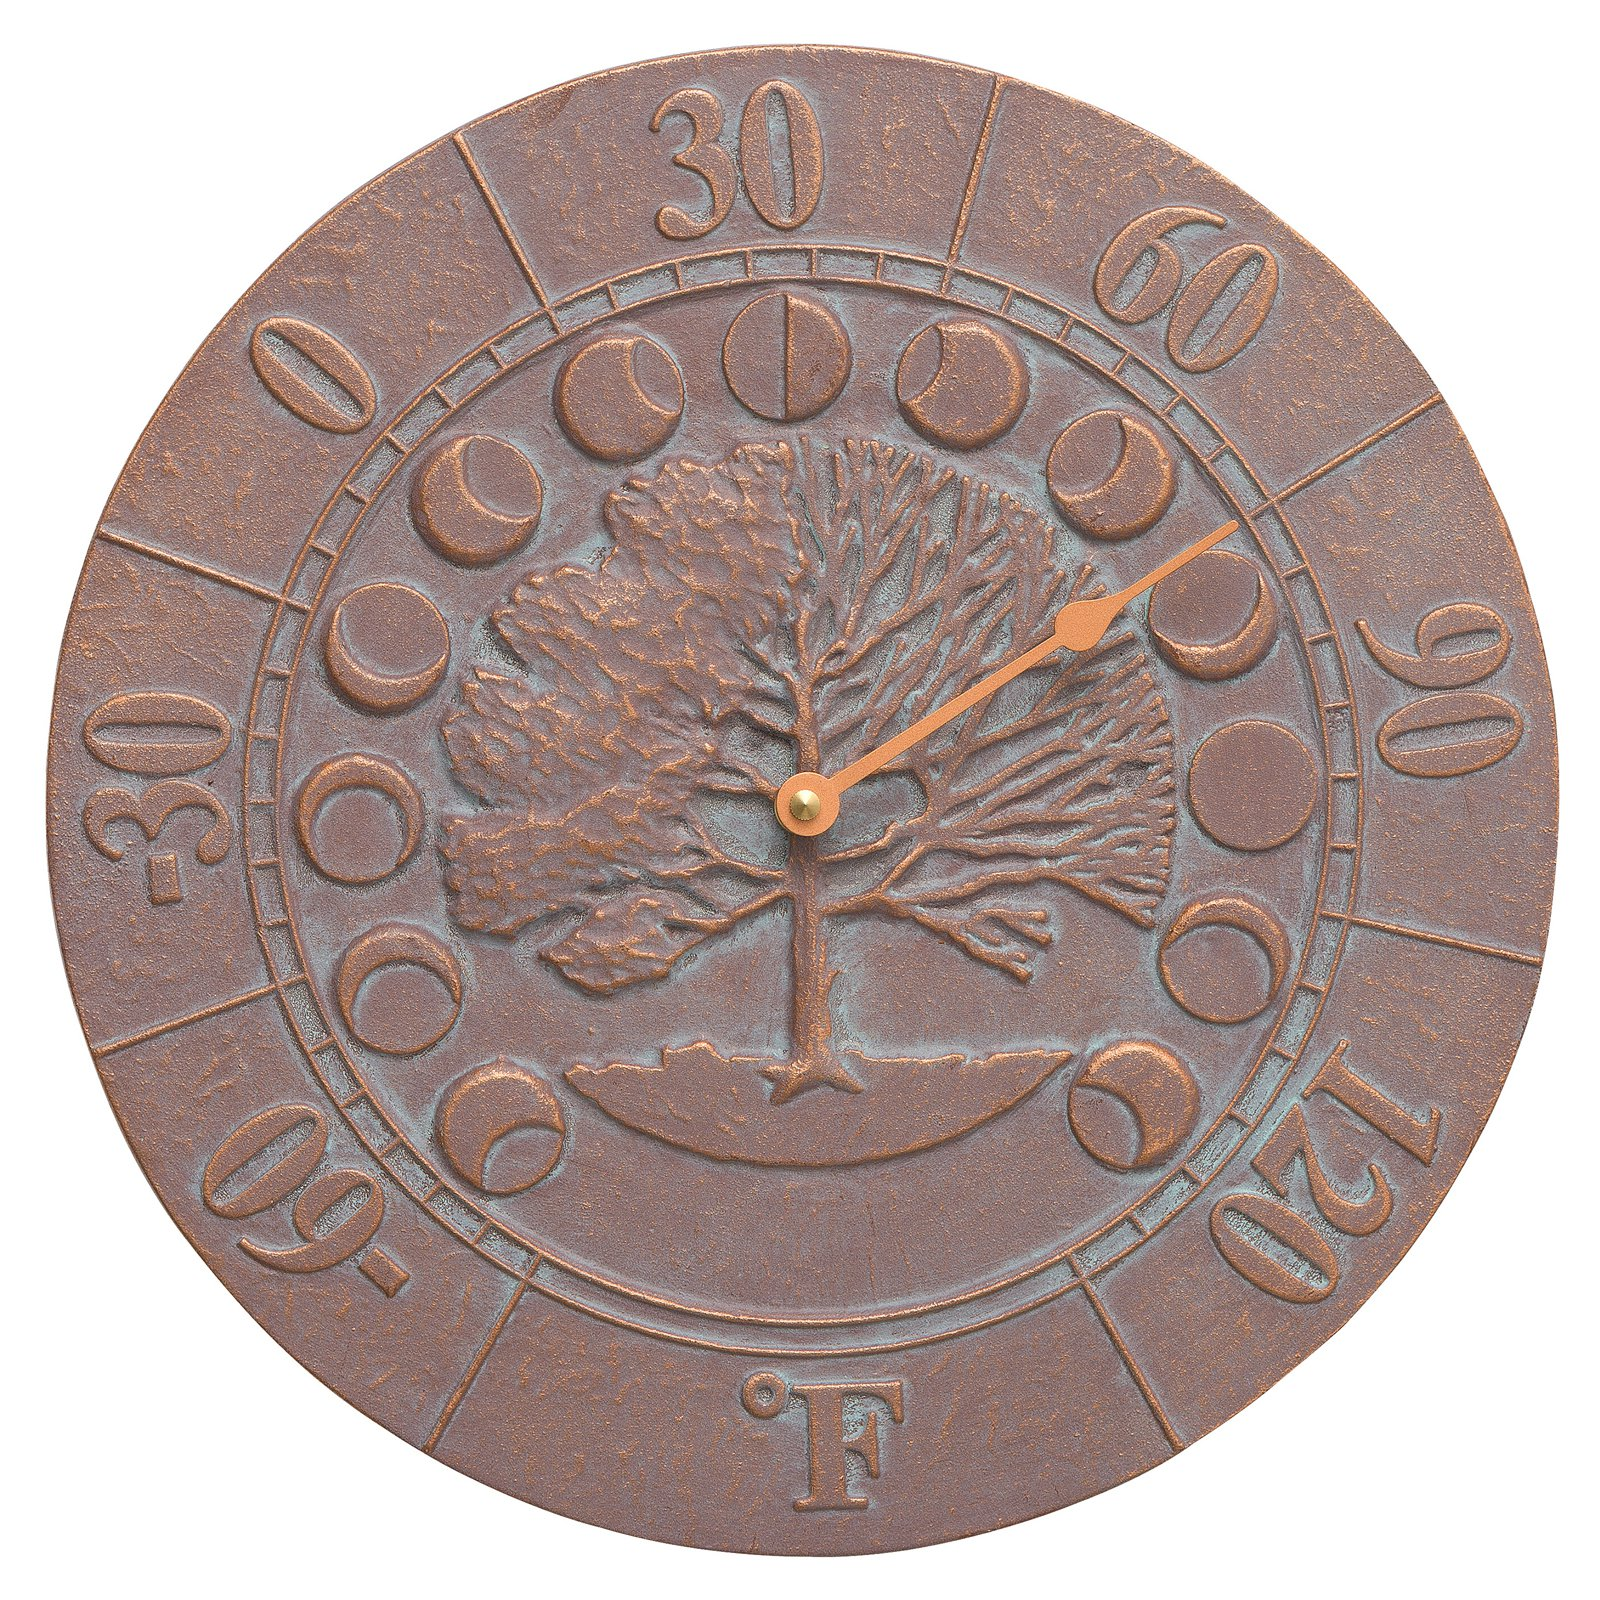 Whitehall Products Times and Seasons Thermometer - Copper Verdigris